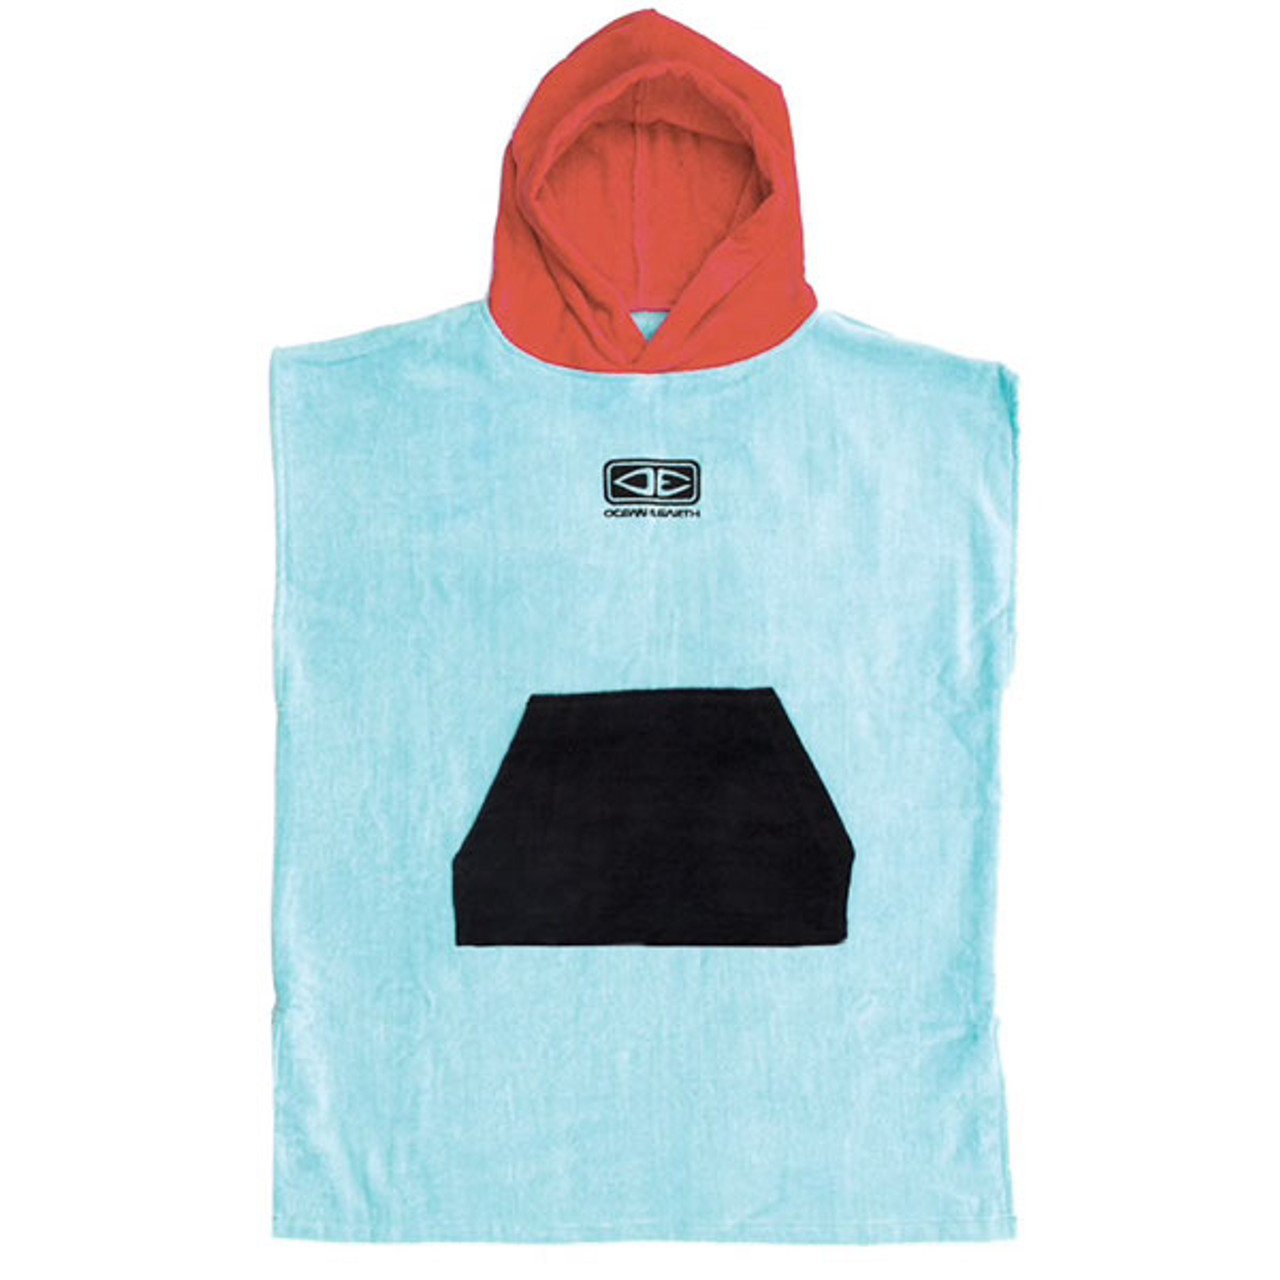 Toddlers Hooded Towel Surf Poncho   Blue   Groms   Kids